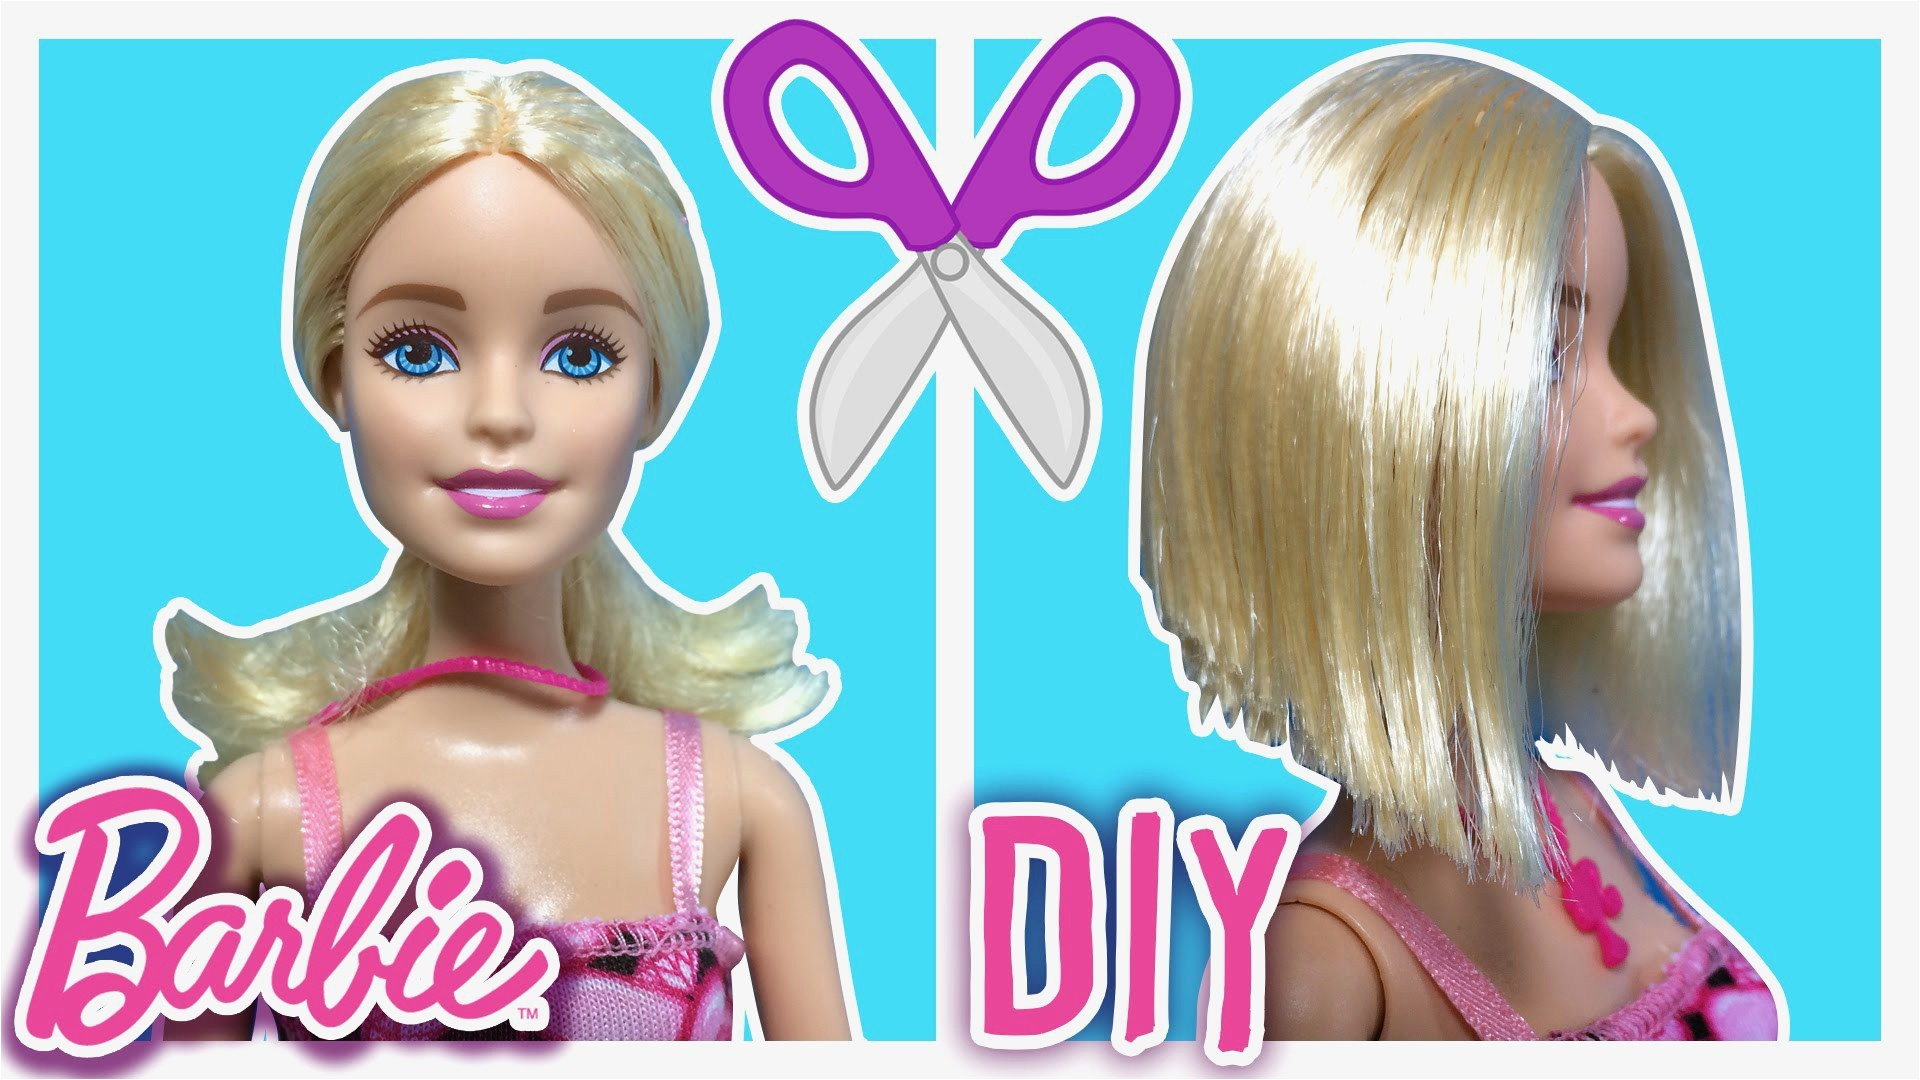 Cute Hairstyles New Cute Hairstyles For American Girl Dolls With image source geetaslist